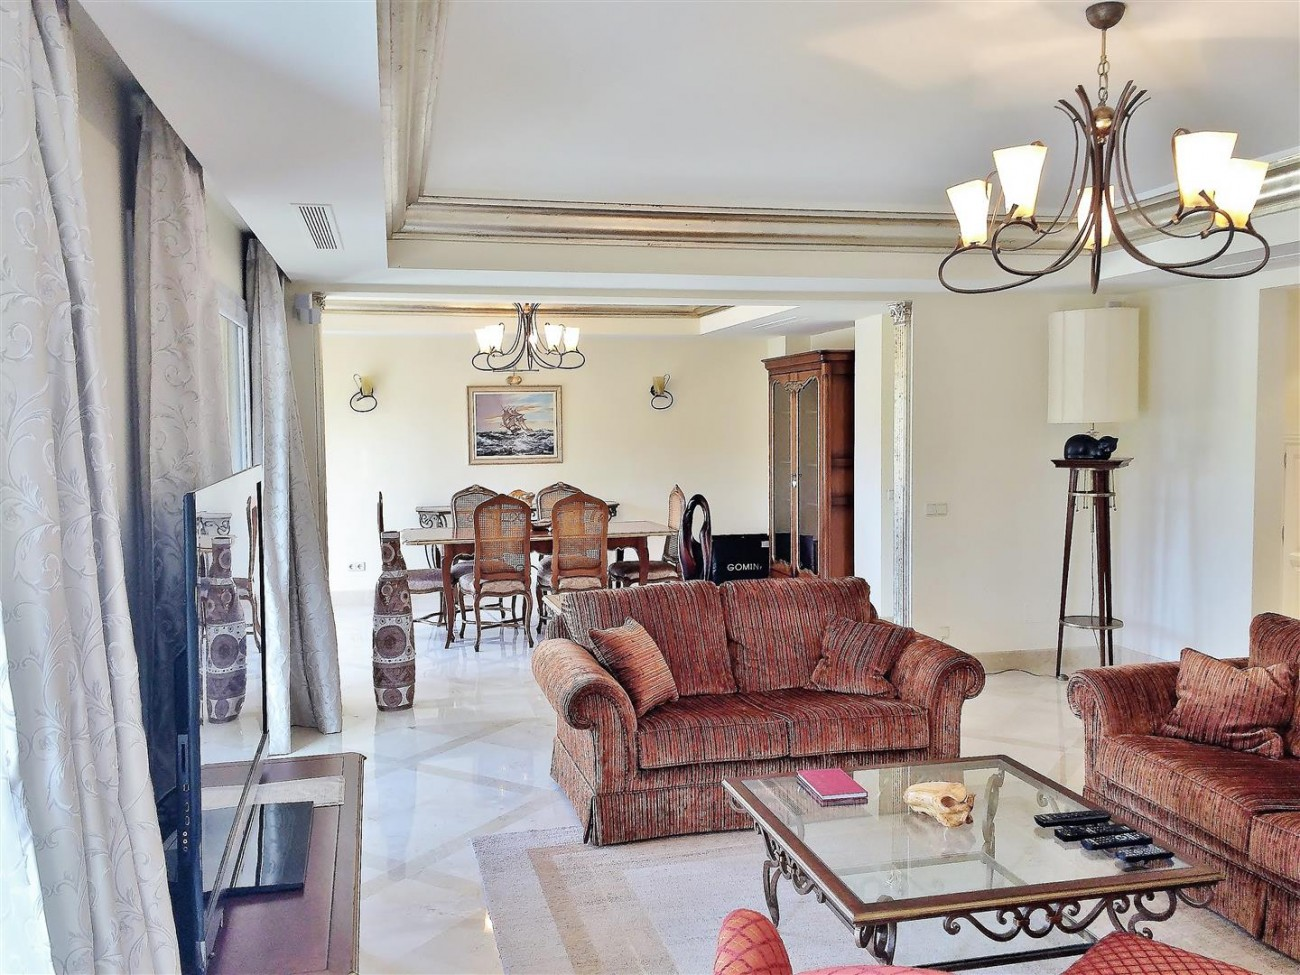 Penthouse for sale Las Alamandas Nueva Andalucia Marbella Spain (1) (Large)